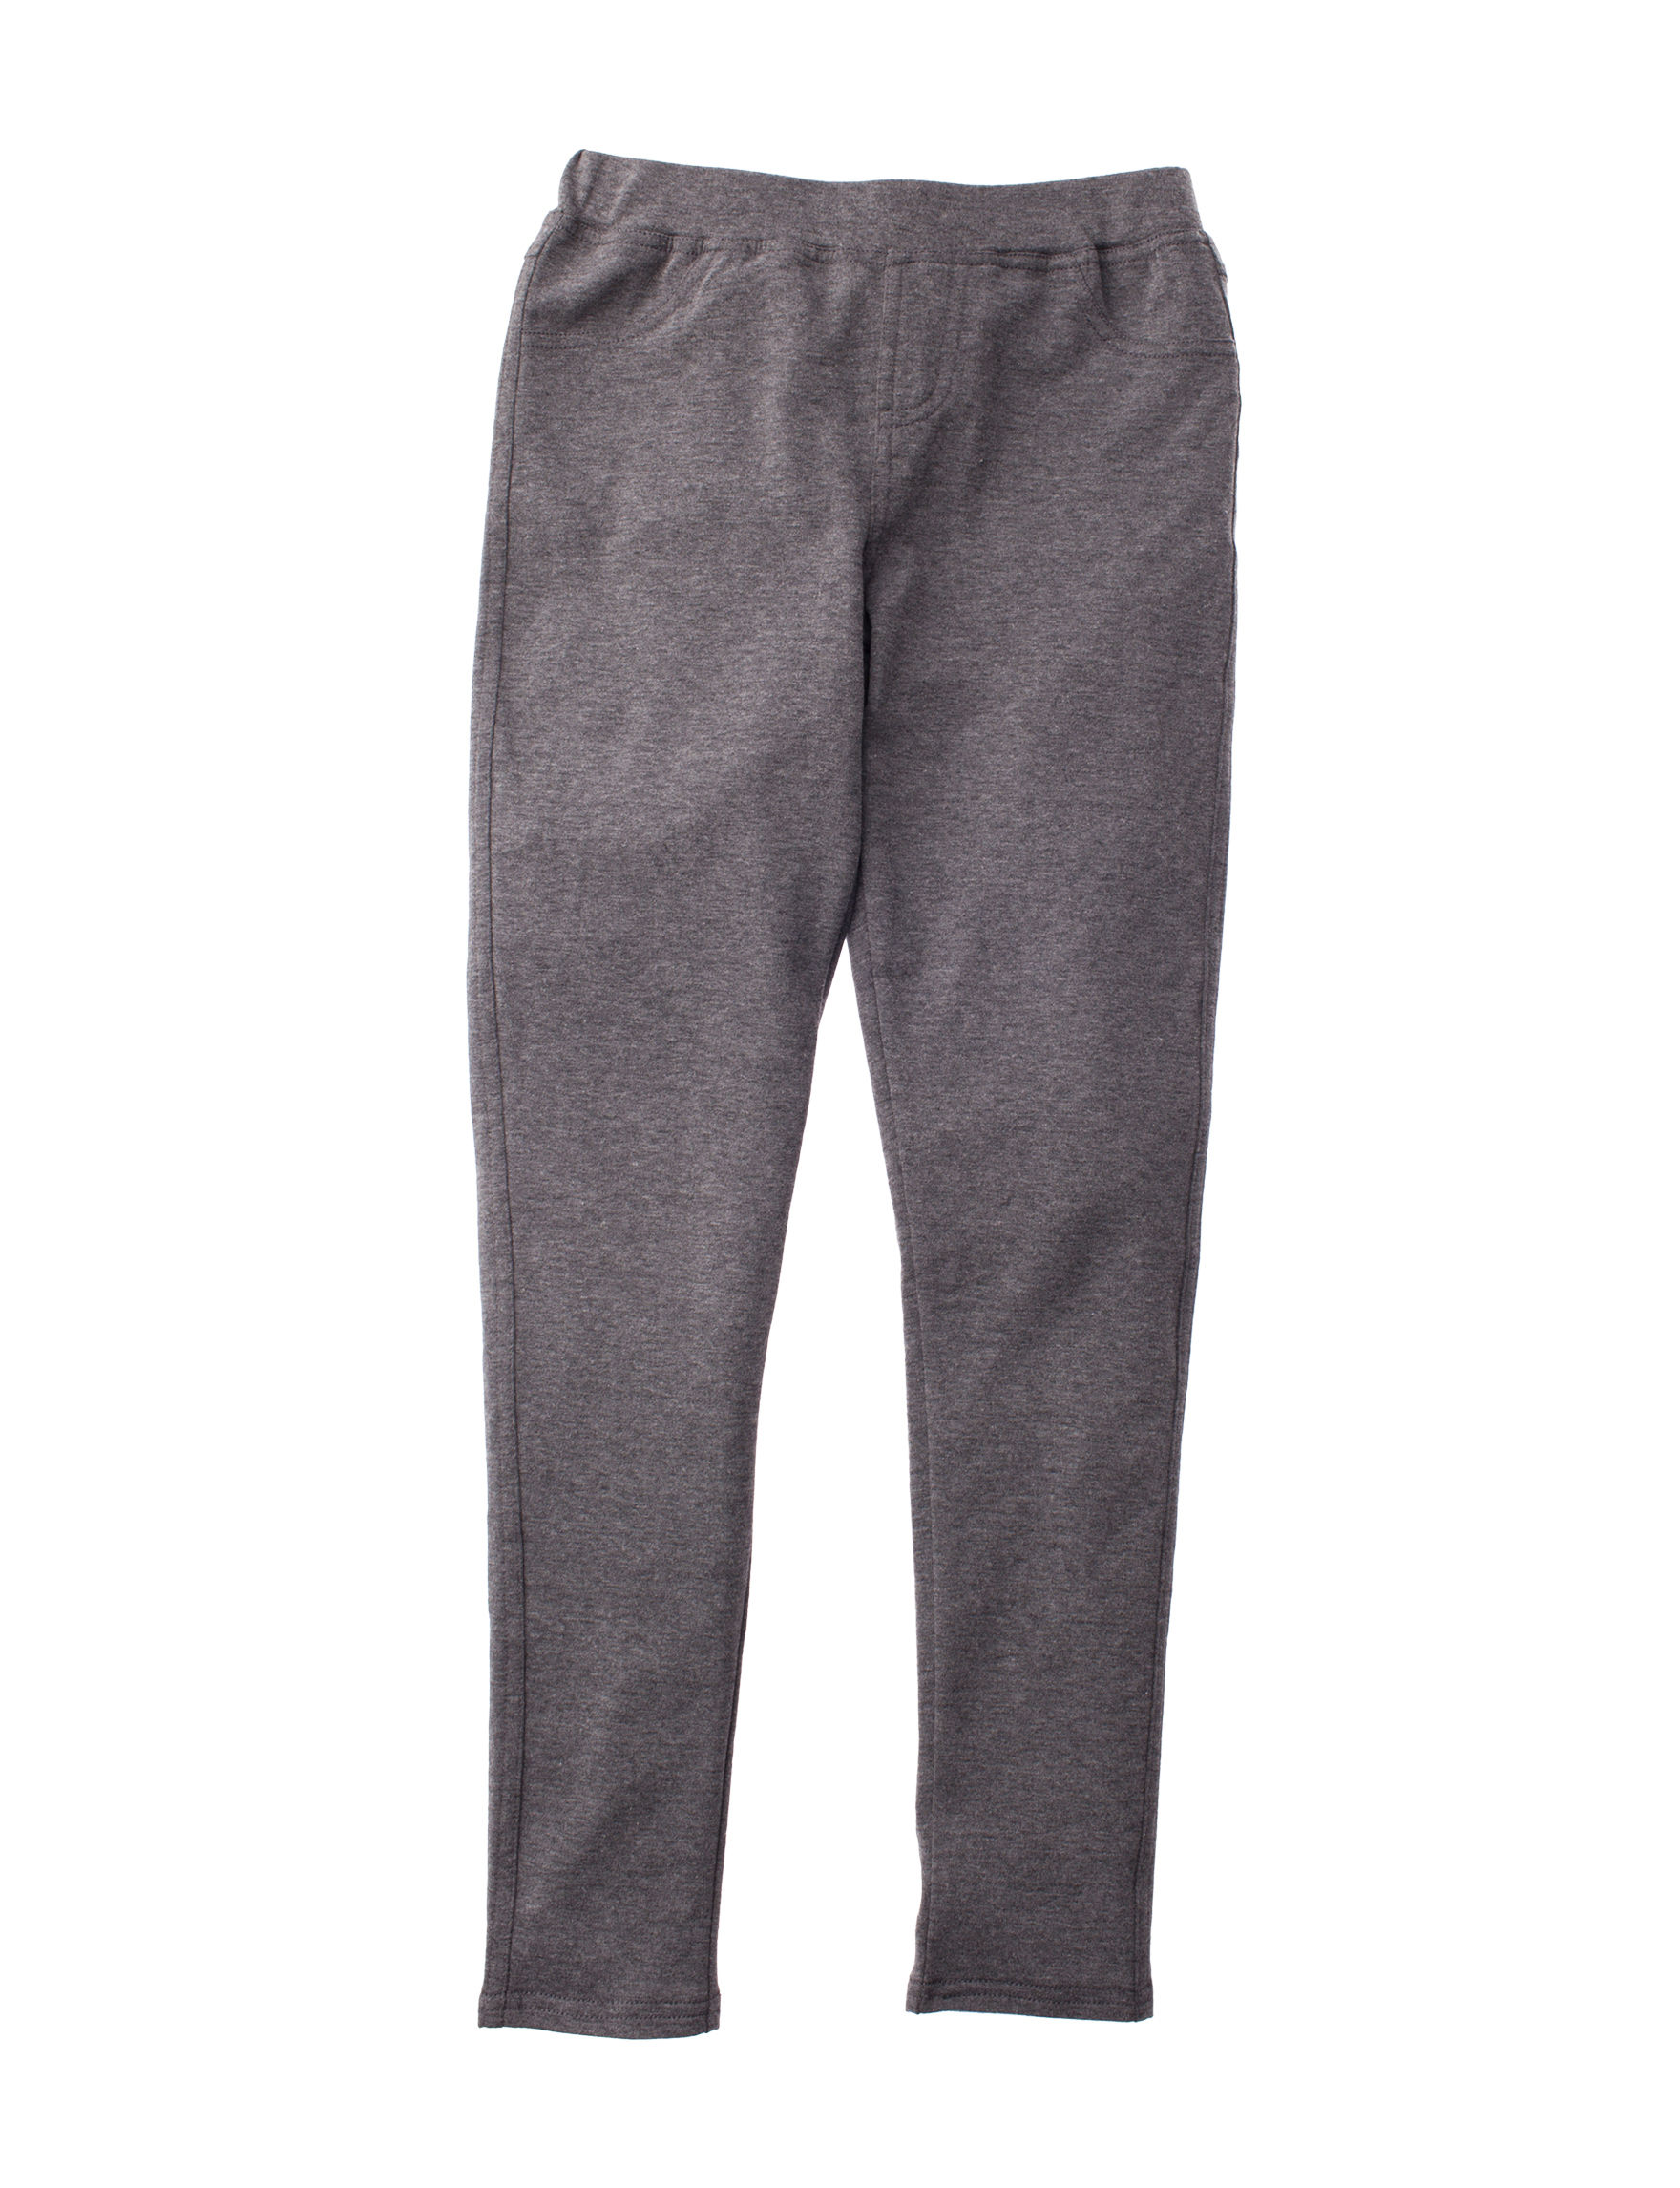 One Step Up Heather Grey Jeggings